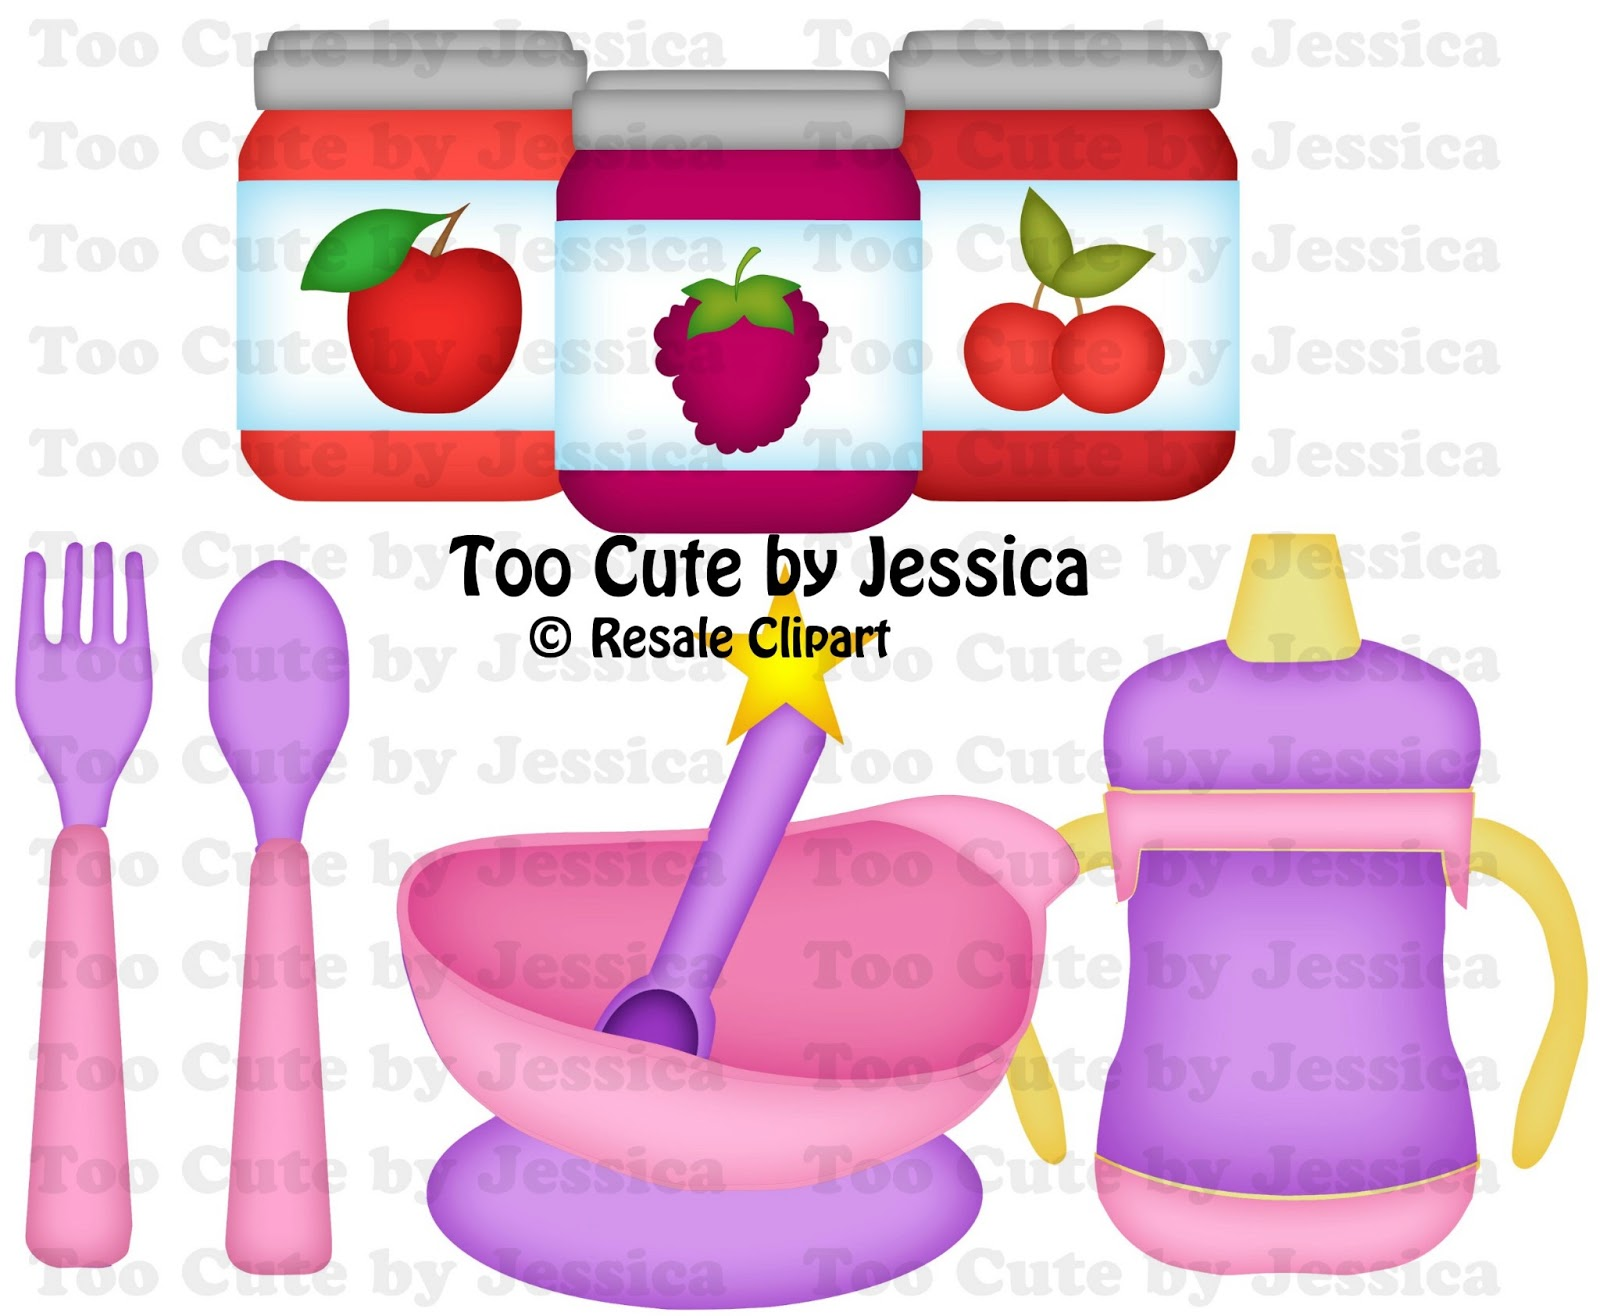 Baby Food Clip Art Original artwork by resale clipart. cutting files